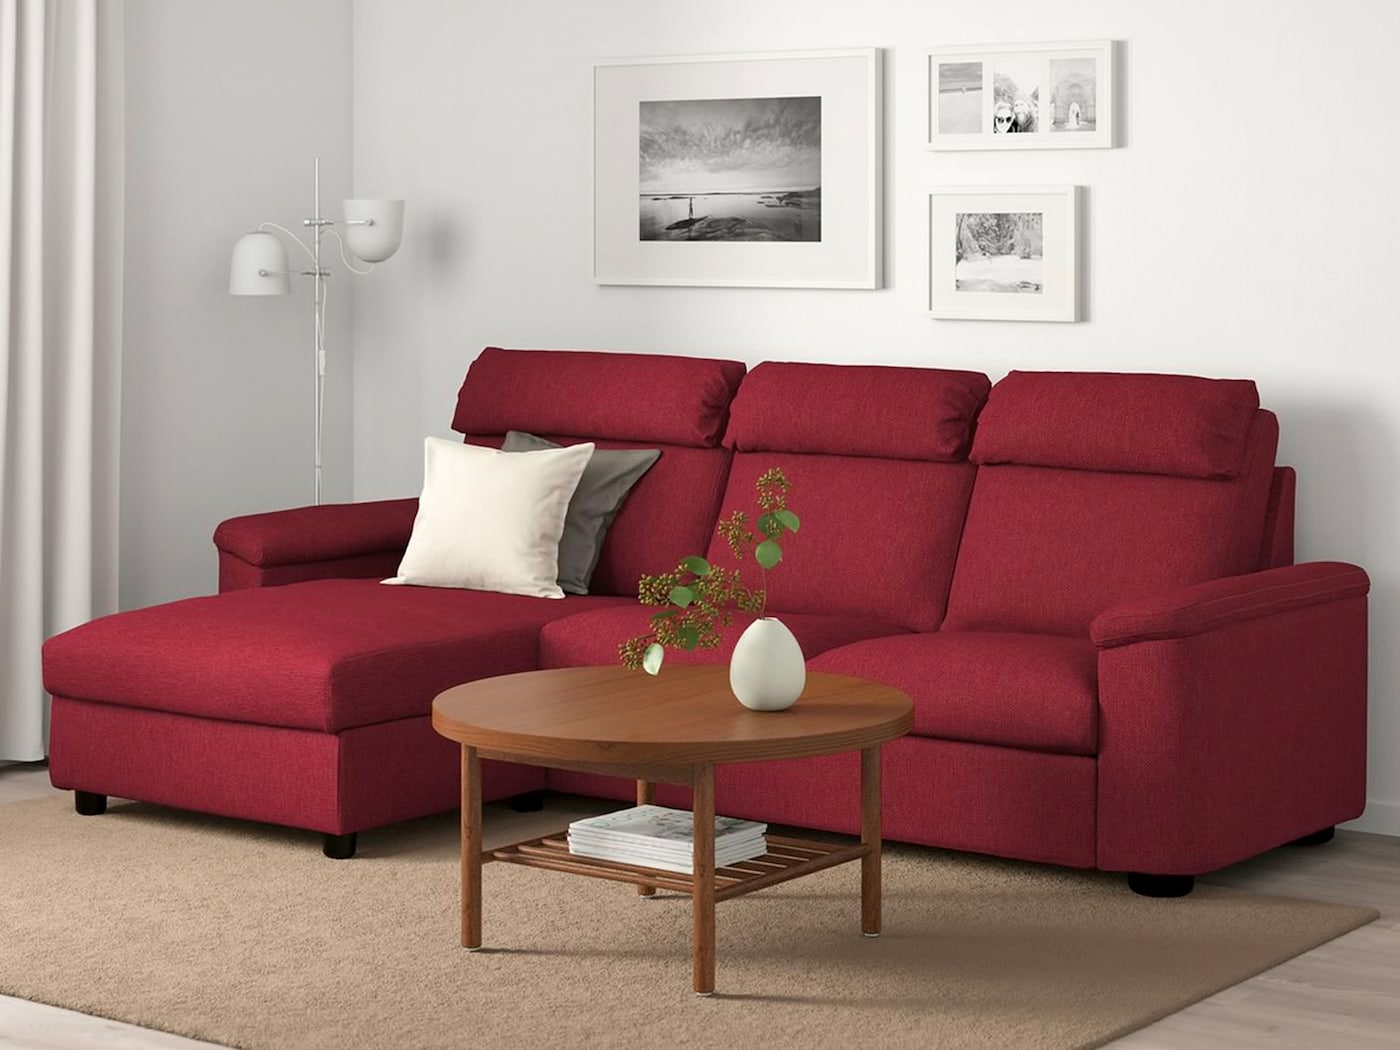 Sofa Berlin Design Design Your Own Sofa Planners Ikea